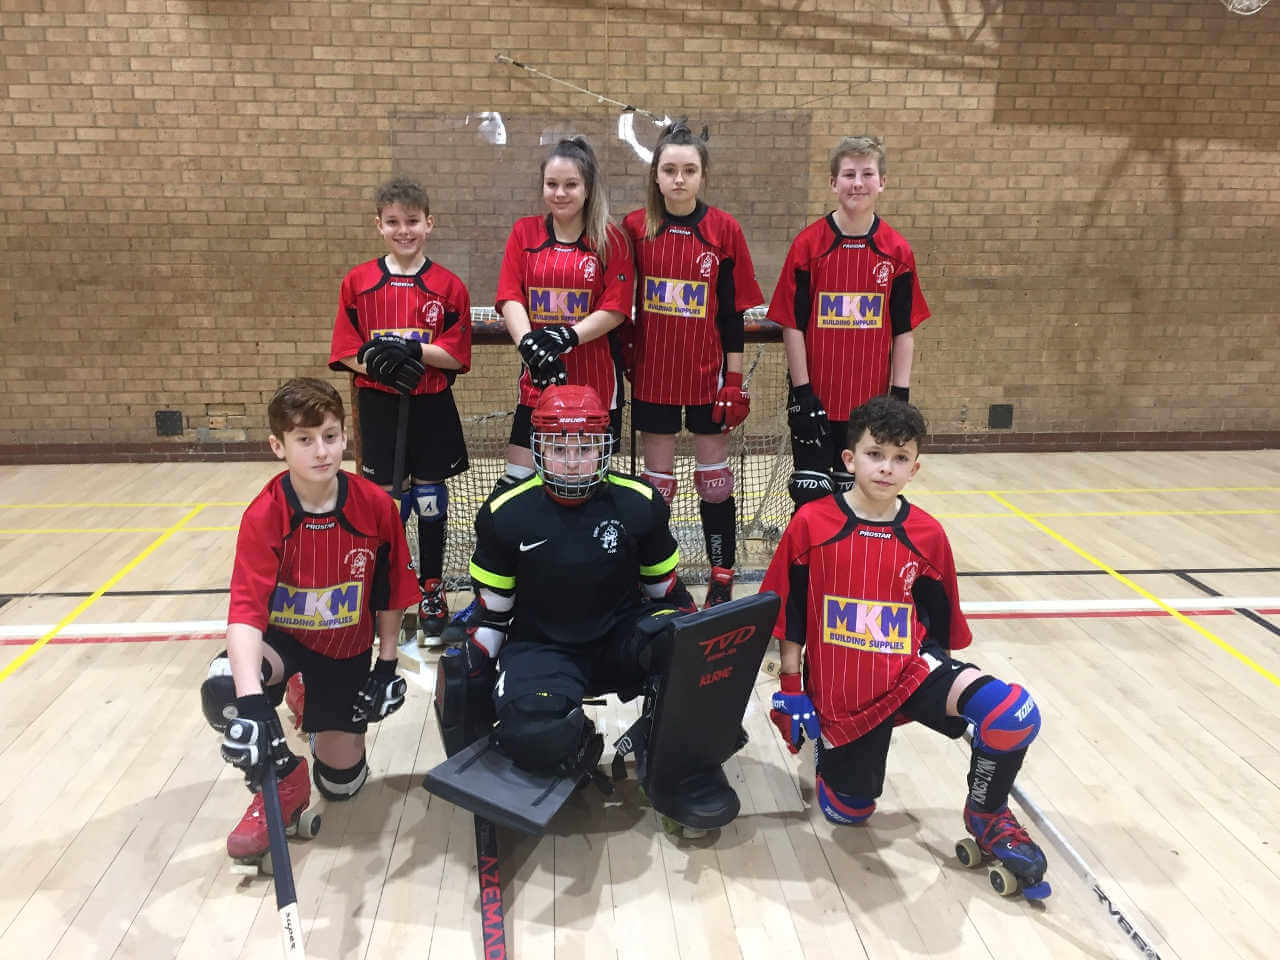 u15 Report: 9th Feb 2019